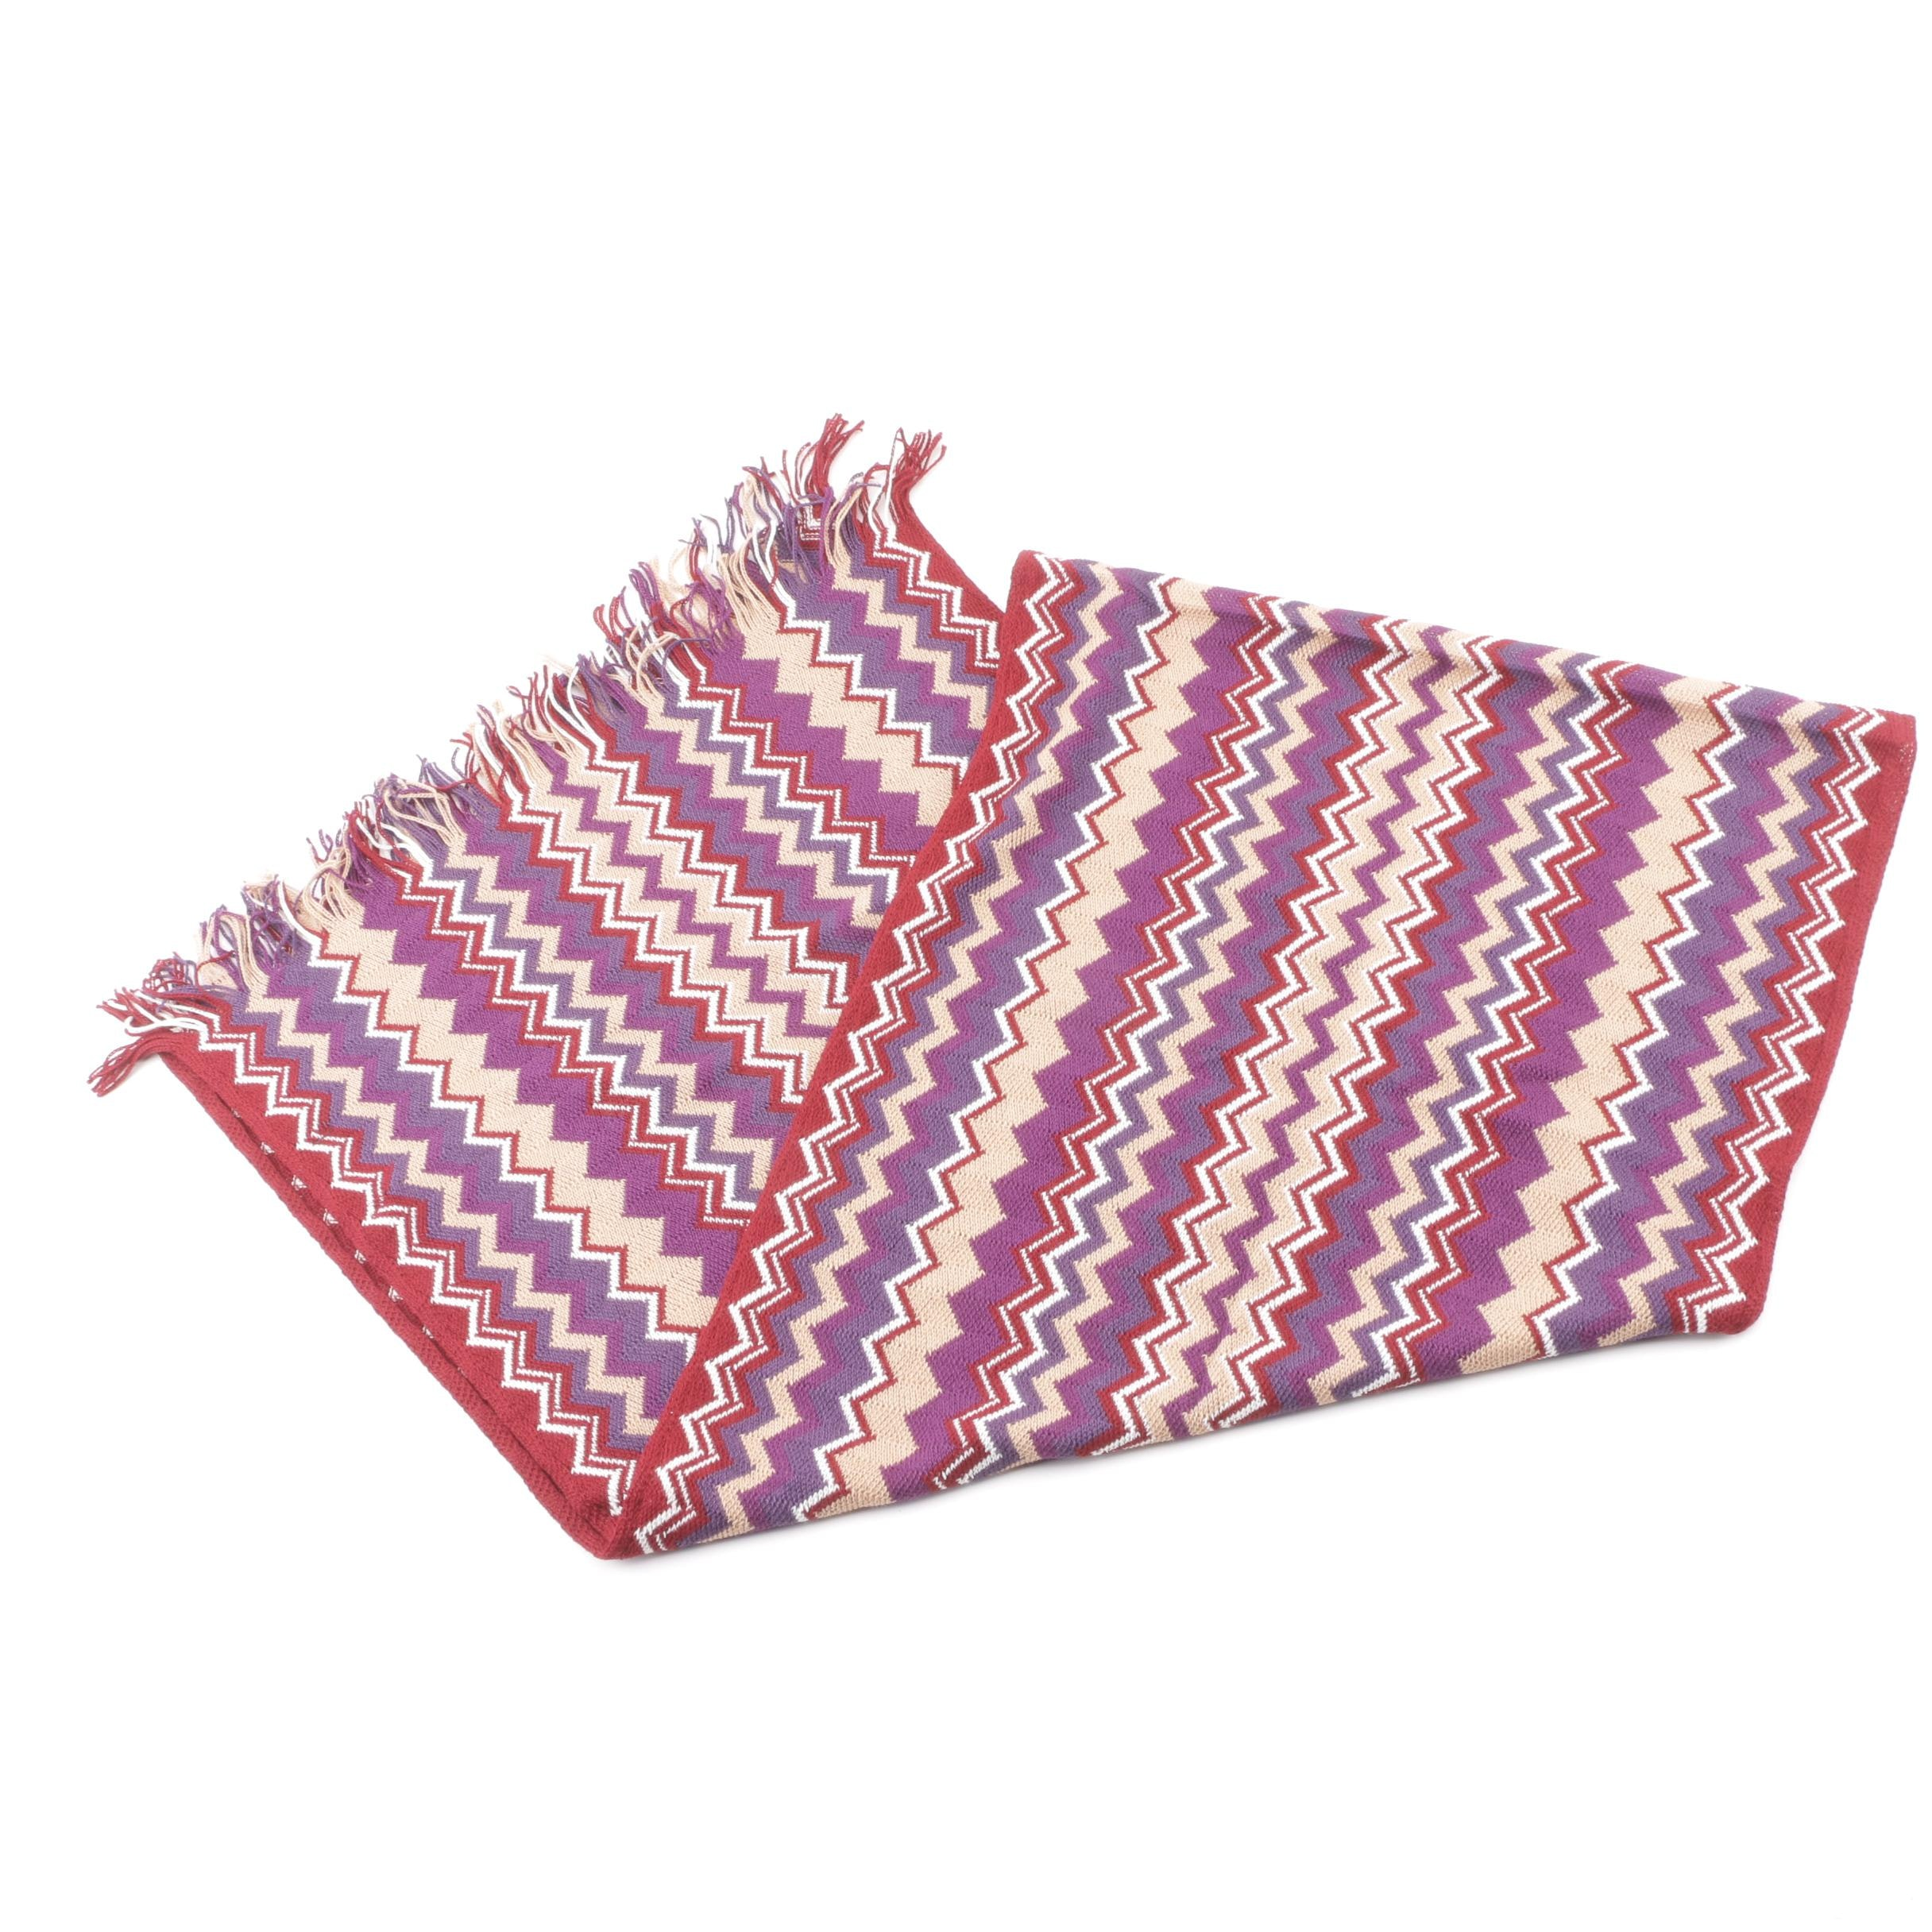 Missoni Multicolored Chevron Wool and Acrylic Blend Knit Scarf